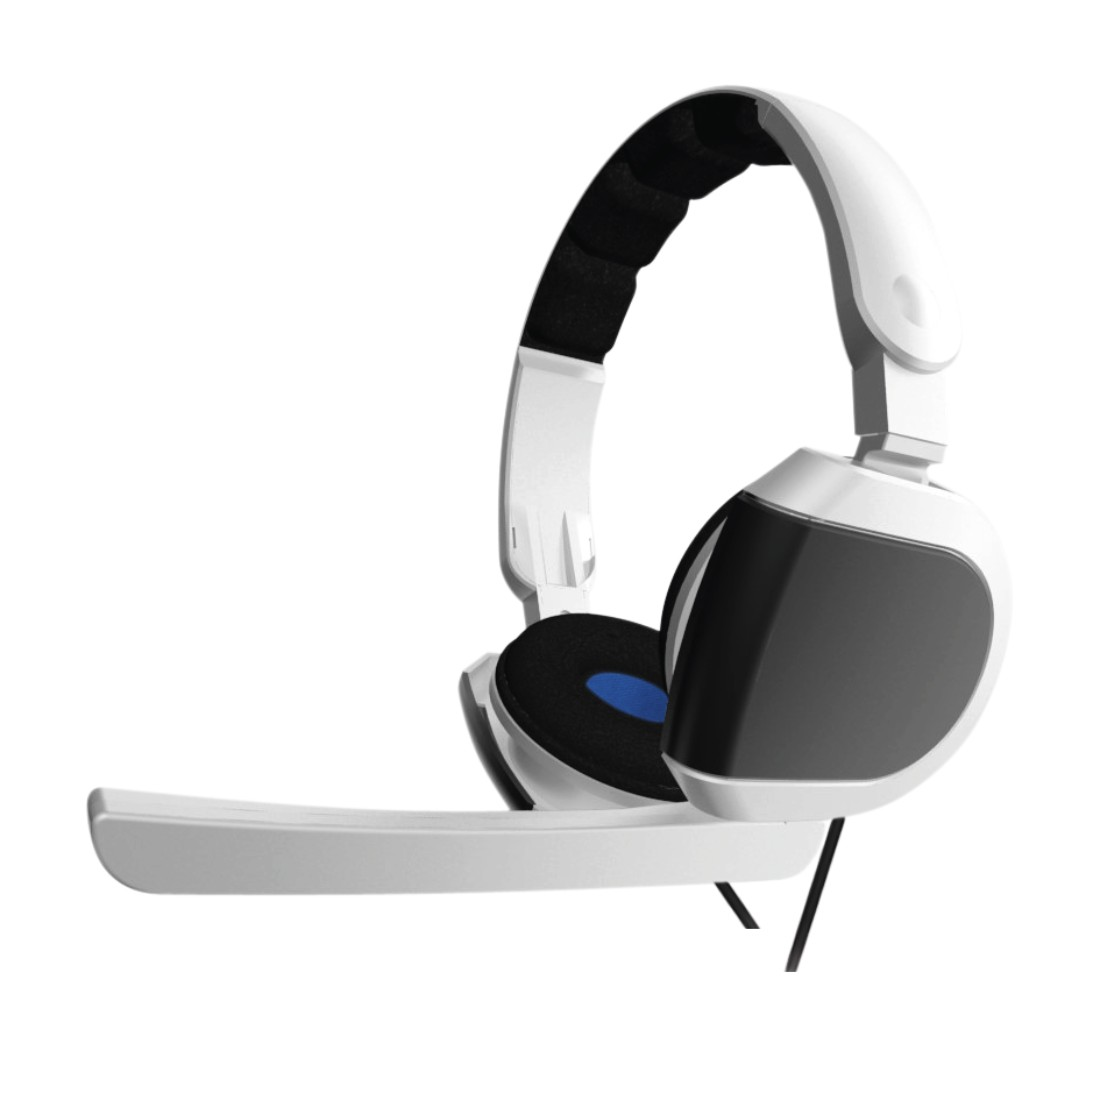 abx6 High-Res Image 6 - Hama, Insomnia VR Stereo Overhead Headset for PS4/PS VR